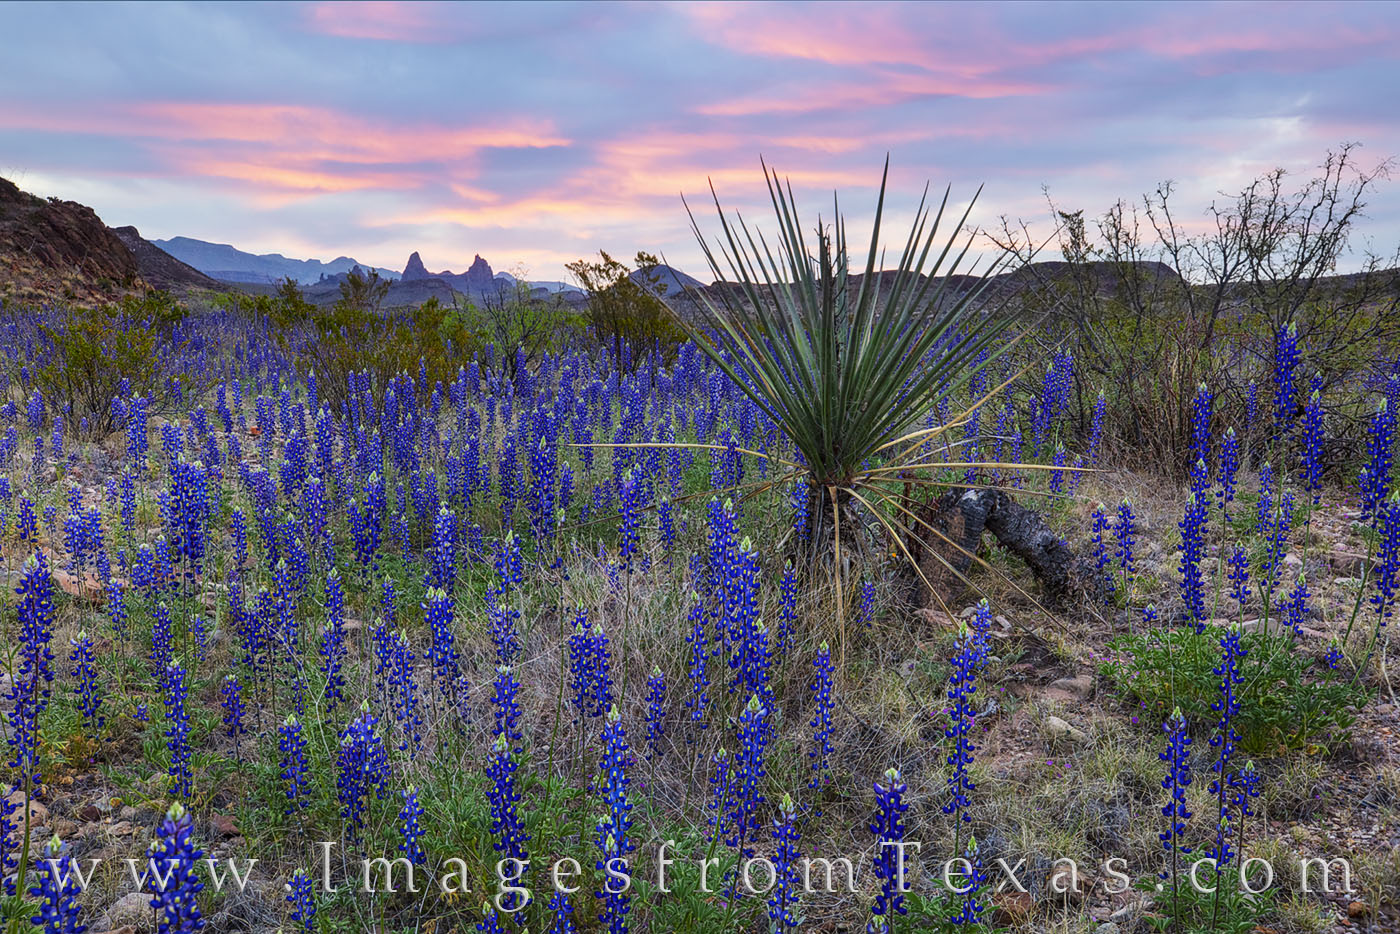 bluebonnets, big bend, mule ears, chisos mountains, wildflowers, morning, desert bloom, superbloom, west texas, photo